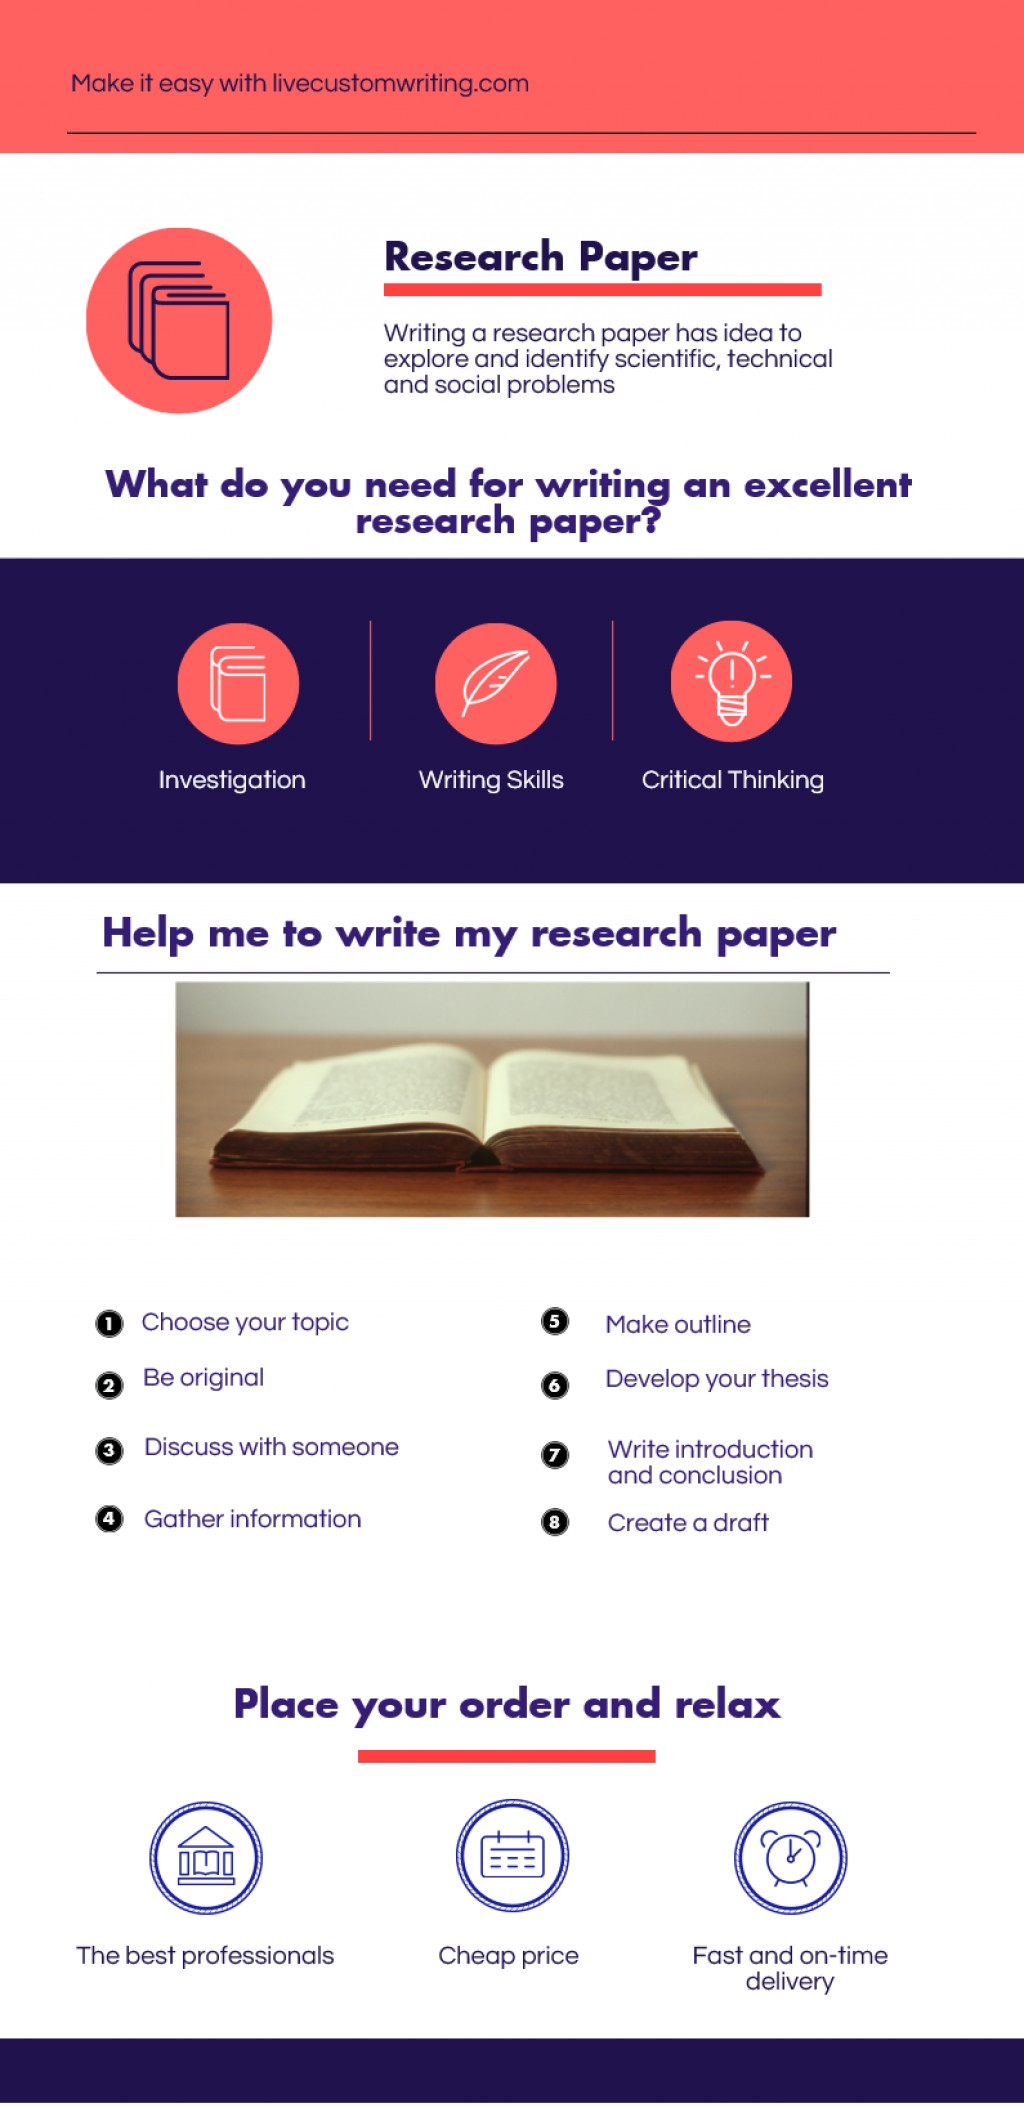 016 Untitled Infographic28229 Write My Research Formidable Paper For Me Cheap Someone Large